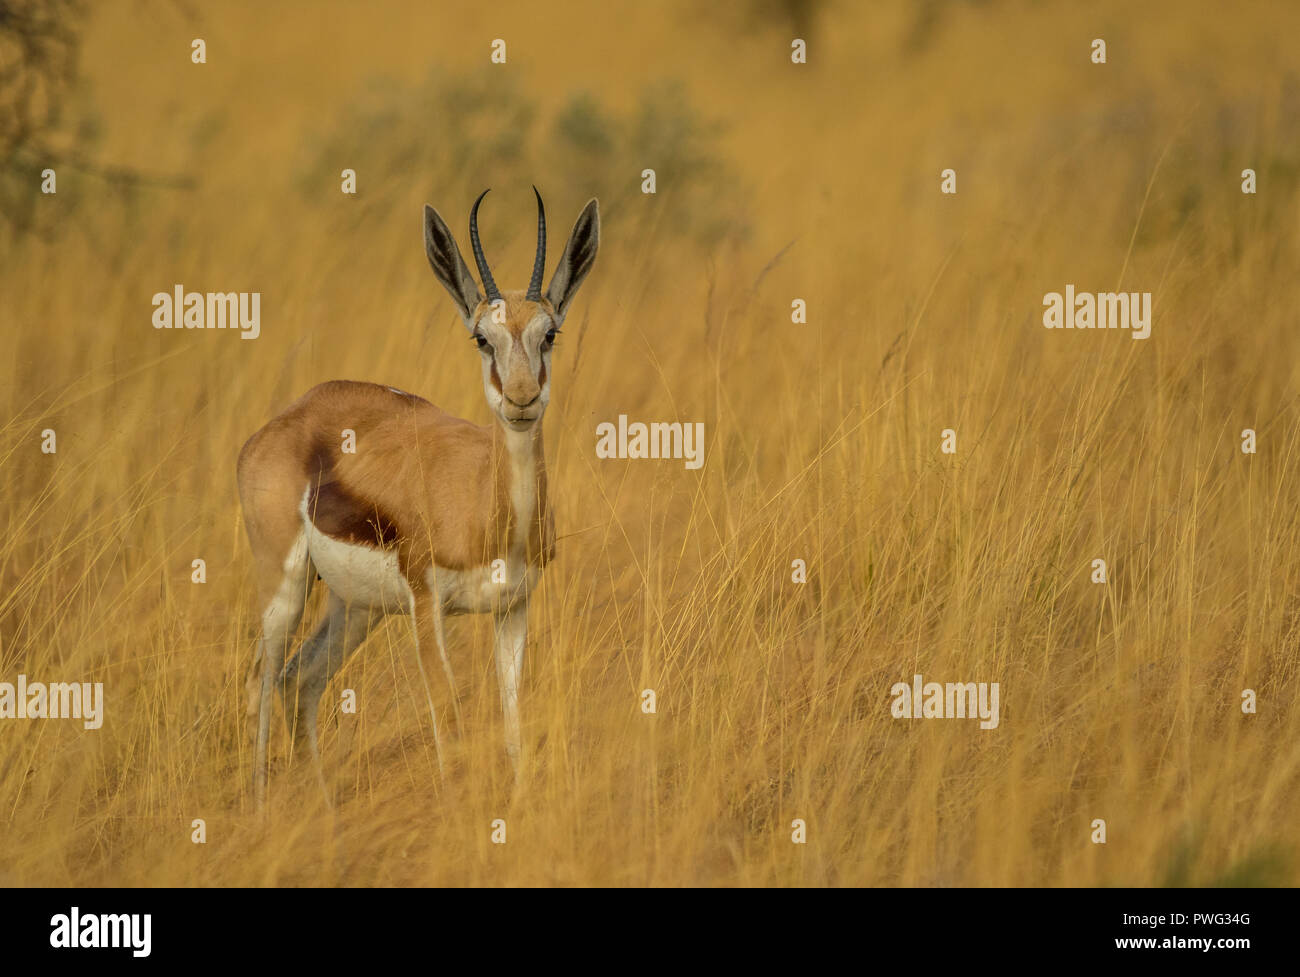 A springbok ewe hides in the tall grass on an African plain image with copy space in landscape format - Stock Image